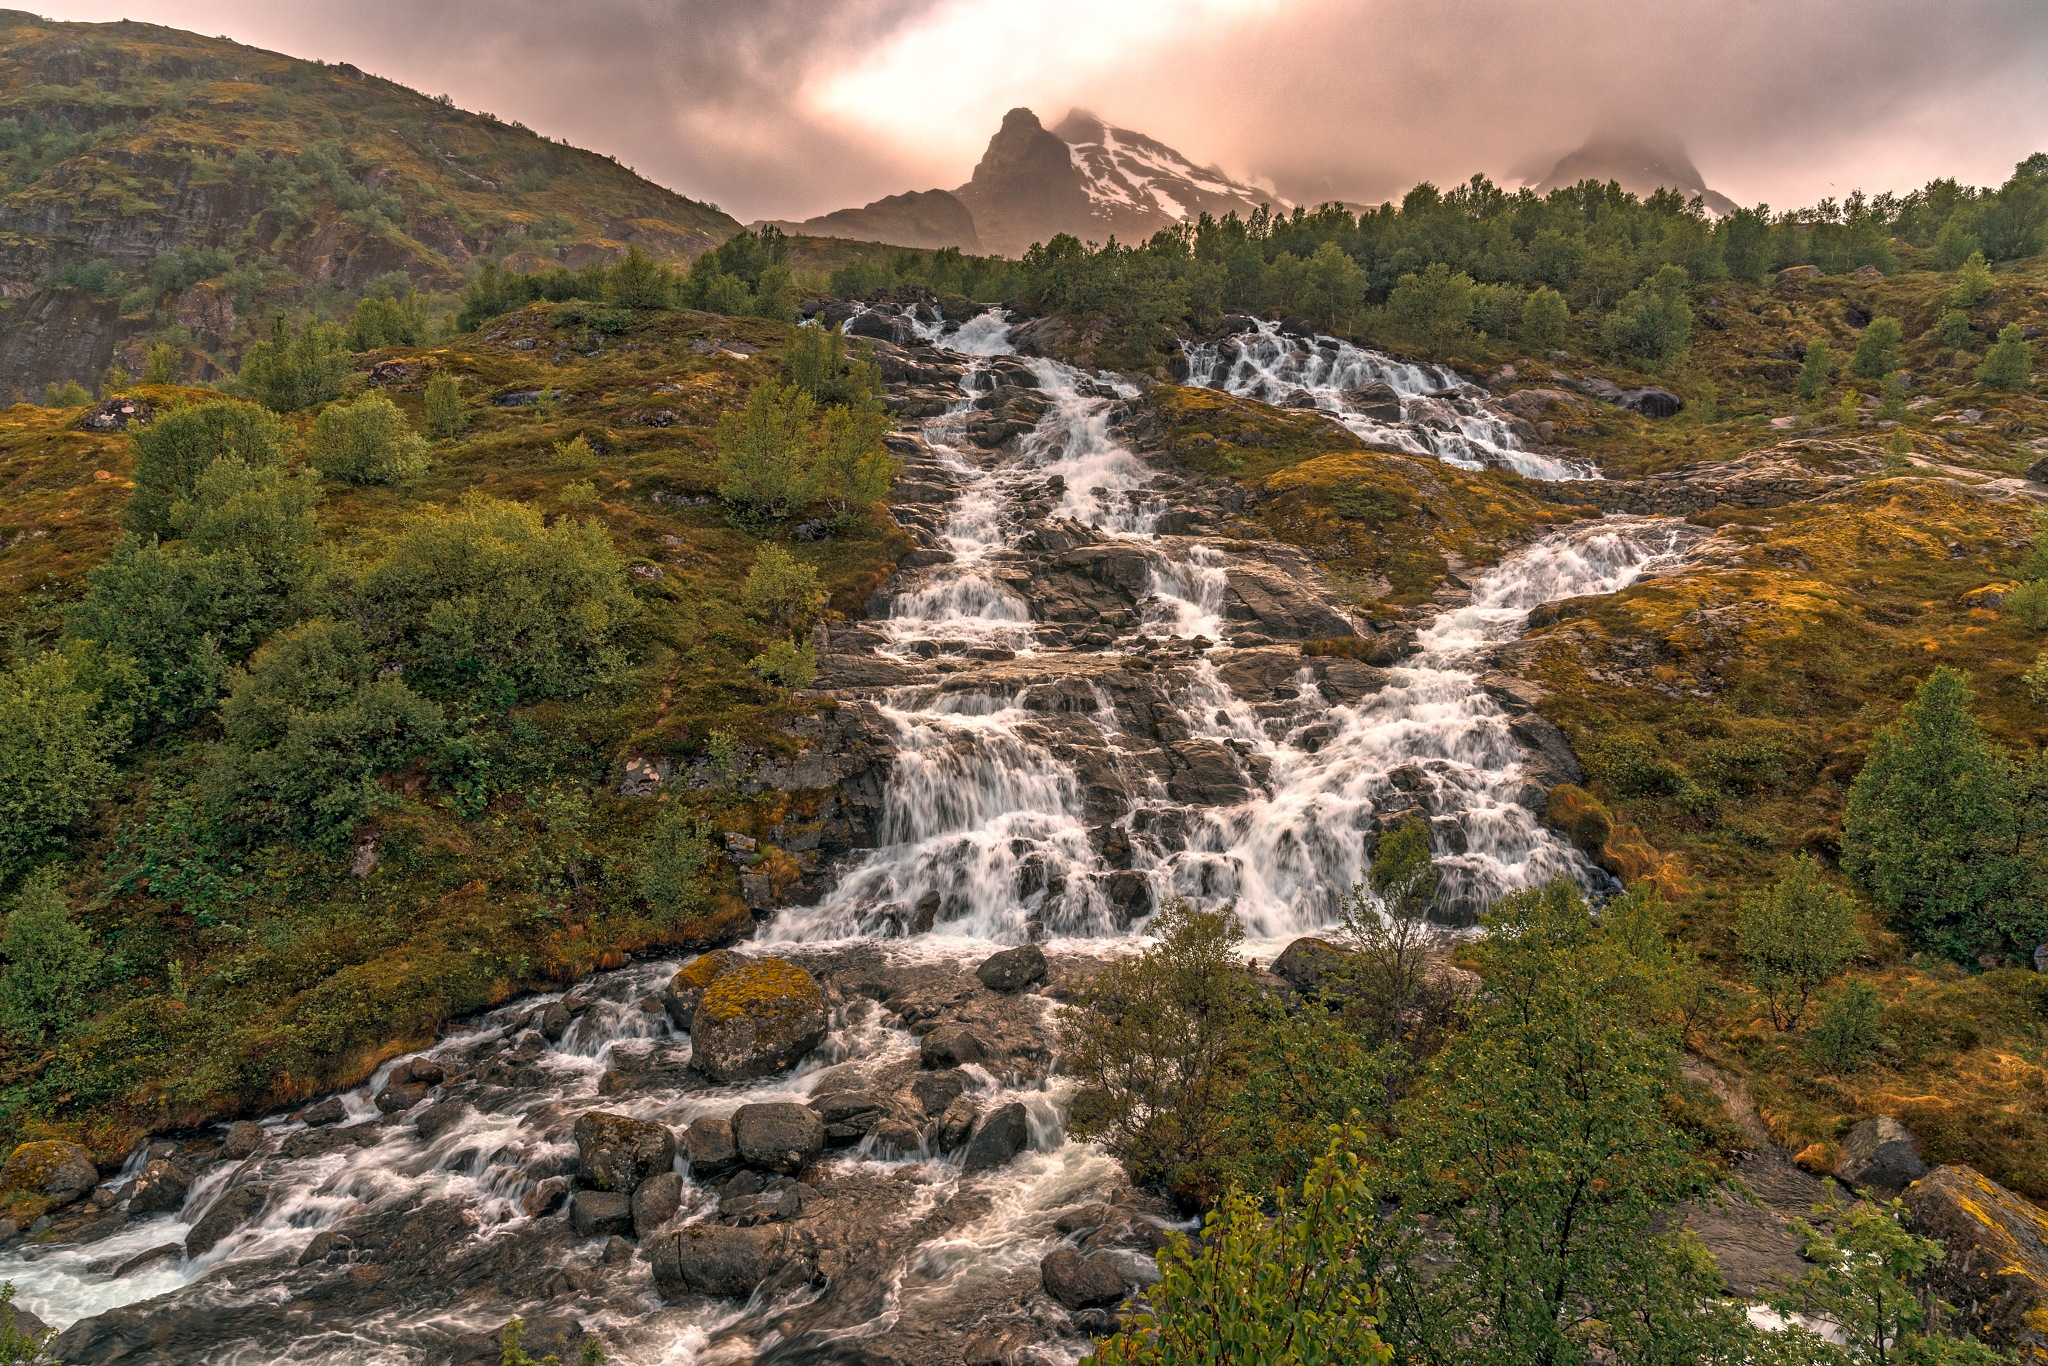 Rainfall is on the way  by romus.ramstrom